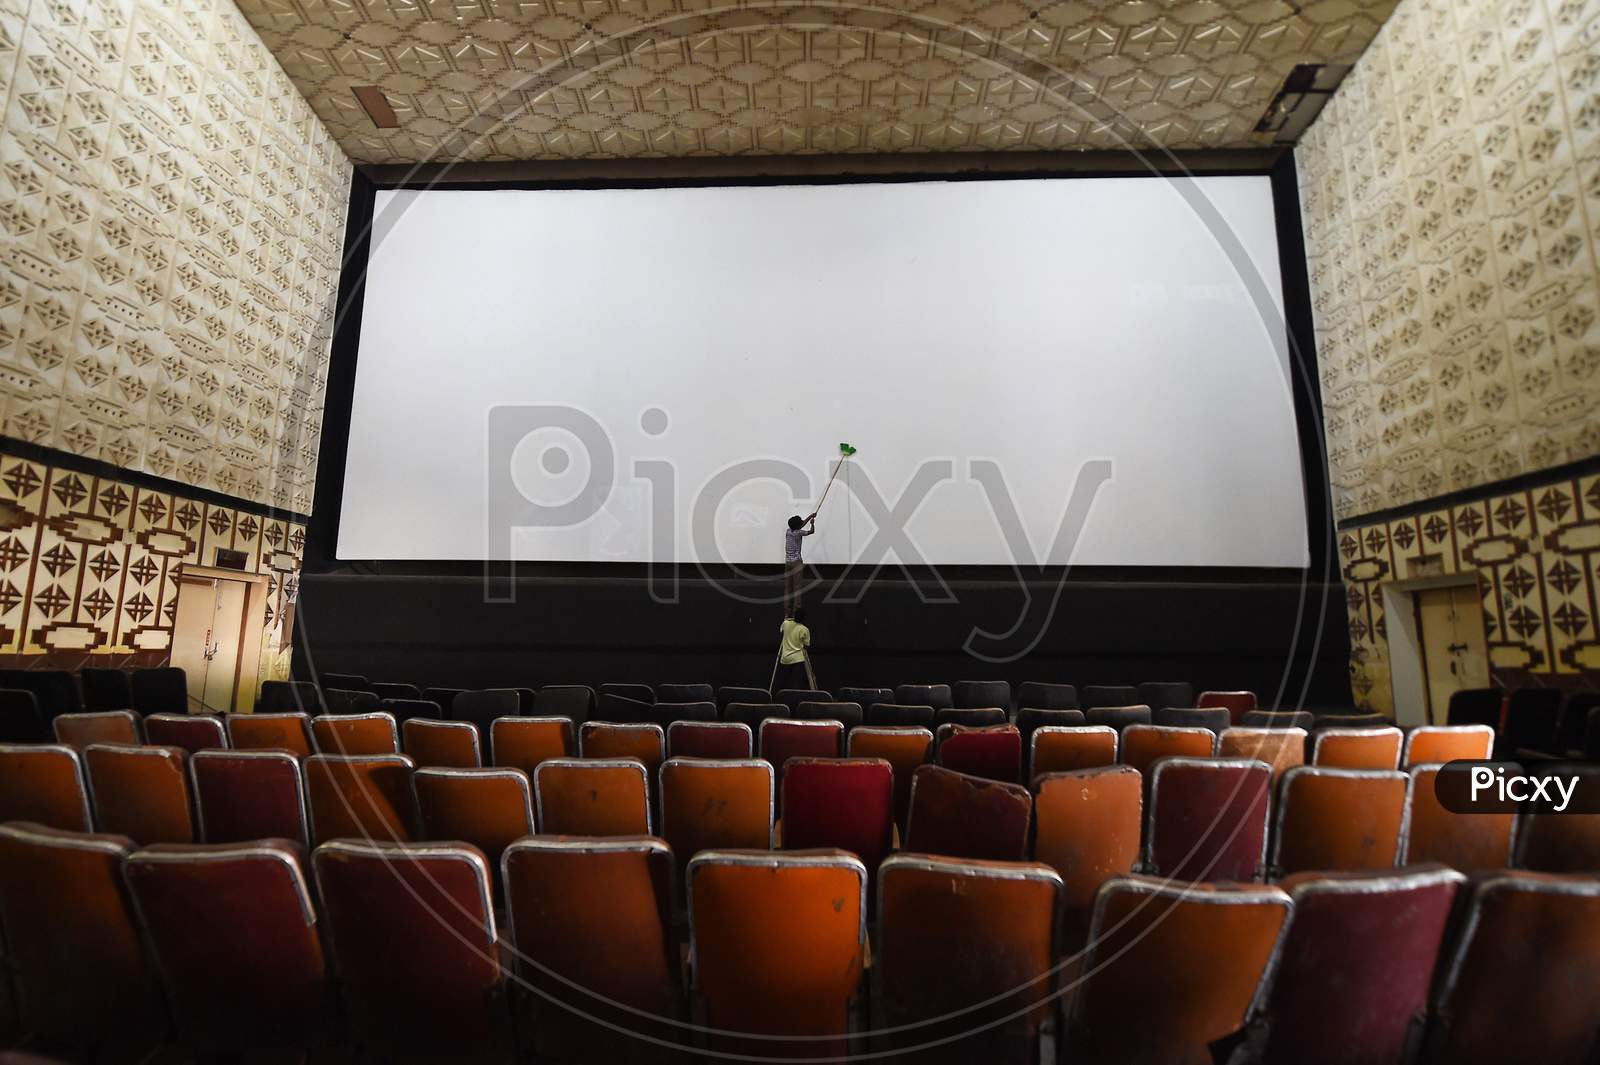 A Worker Cleans A Cinema Hall Ahead Of Its Reopening, During Unlock 5, Amid The Coronavirus Pandemic, In Chennai, Fridayday, Oct.9, 2020